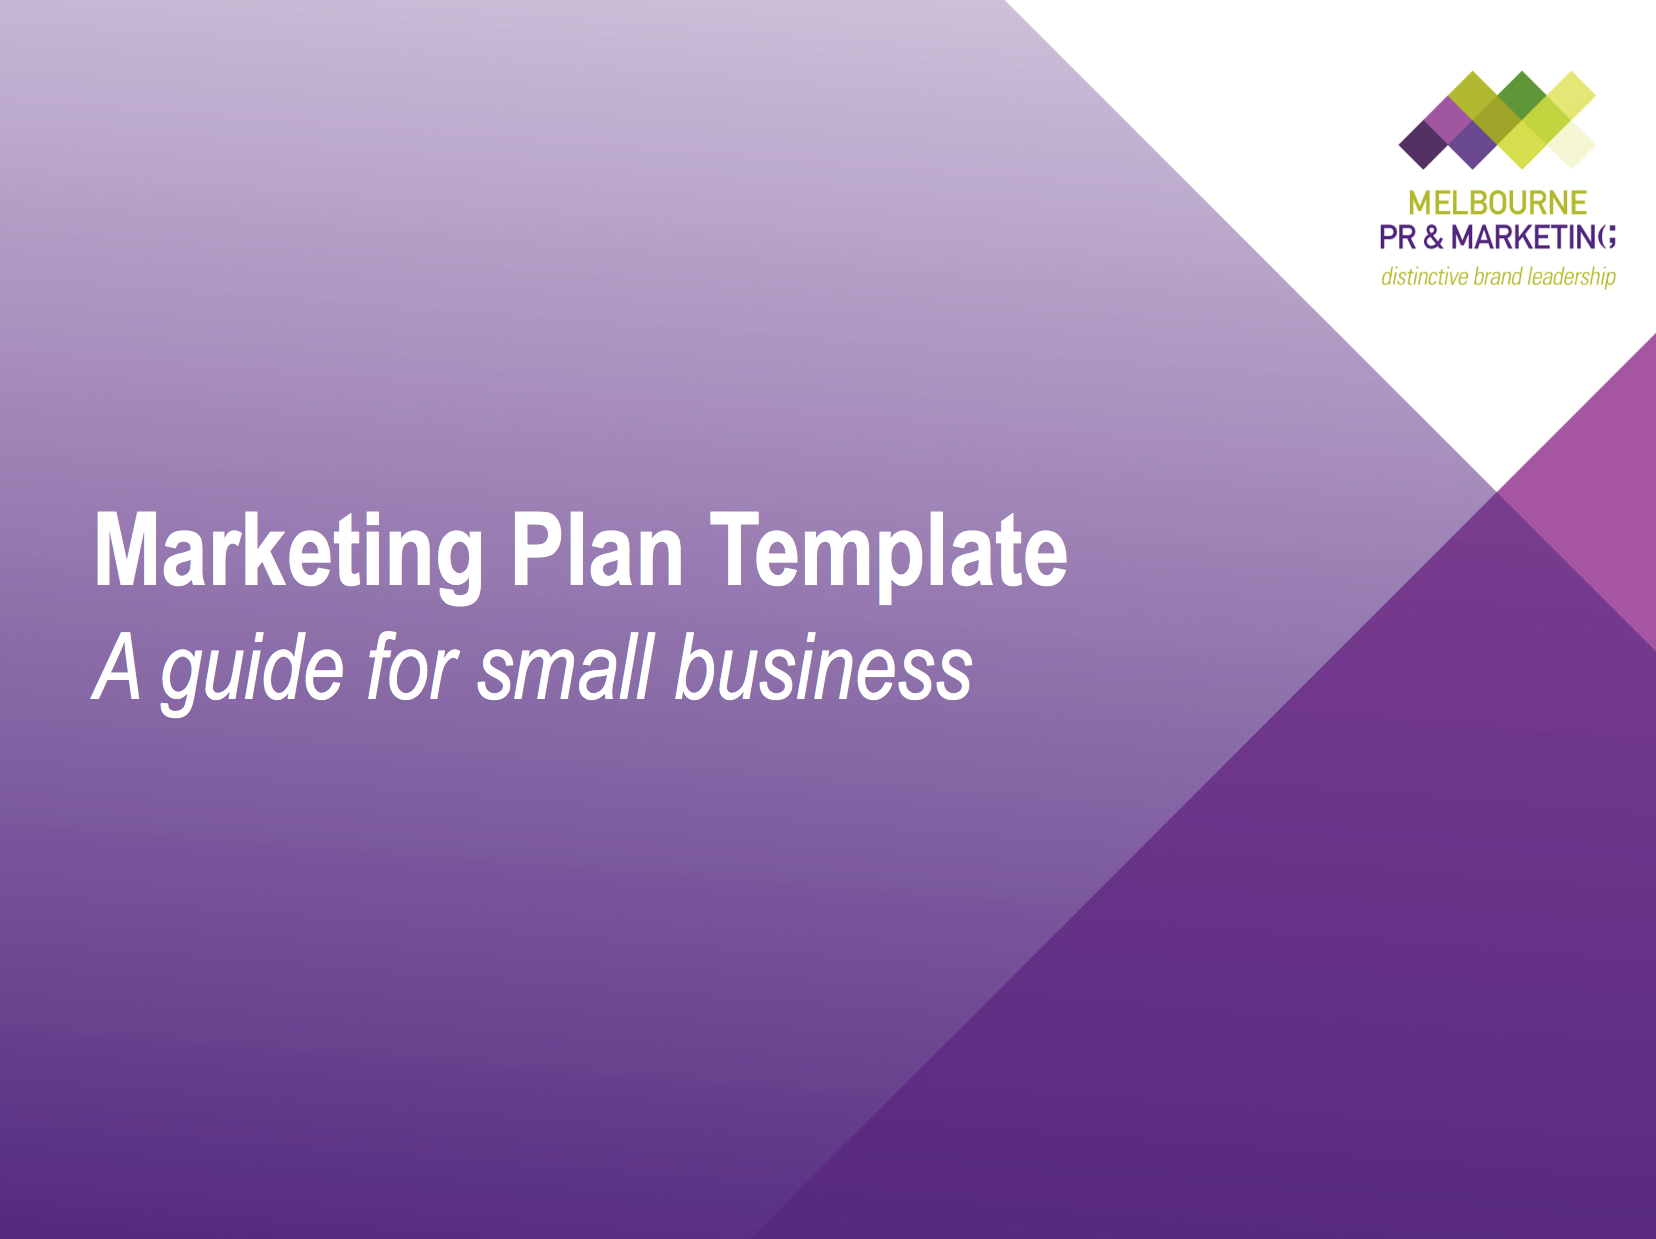 Products Marketing Plan Template A Guide For Small Business Ros Weadman